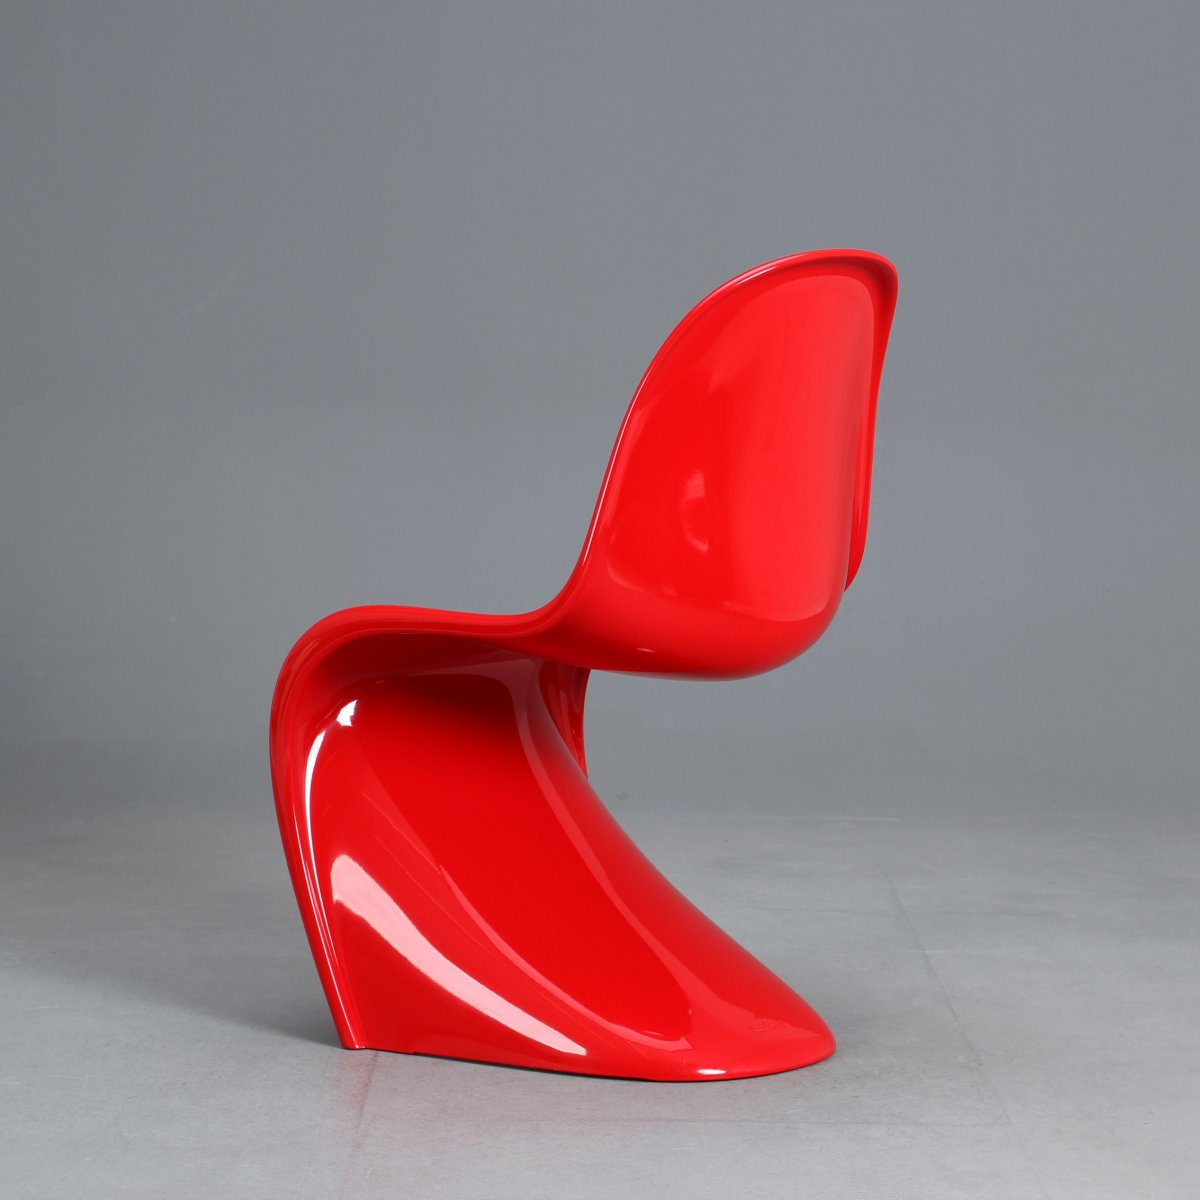 original vitra panton chair classic 2013 chaise par coll es rouge brillant ebay. Black Bedroom Furniture Sets. Home Design Ideas